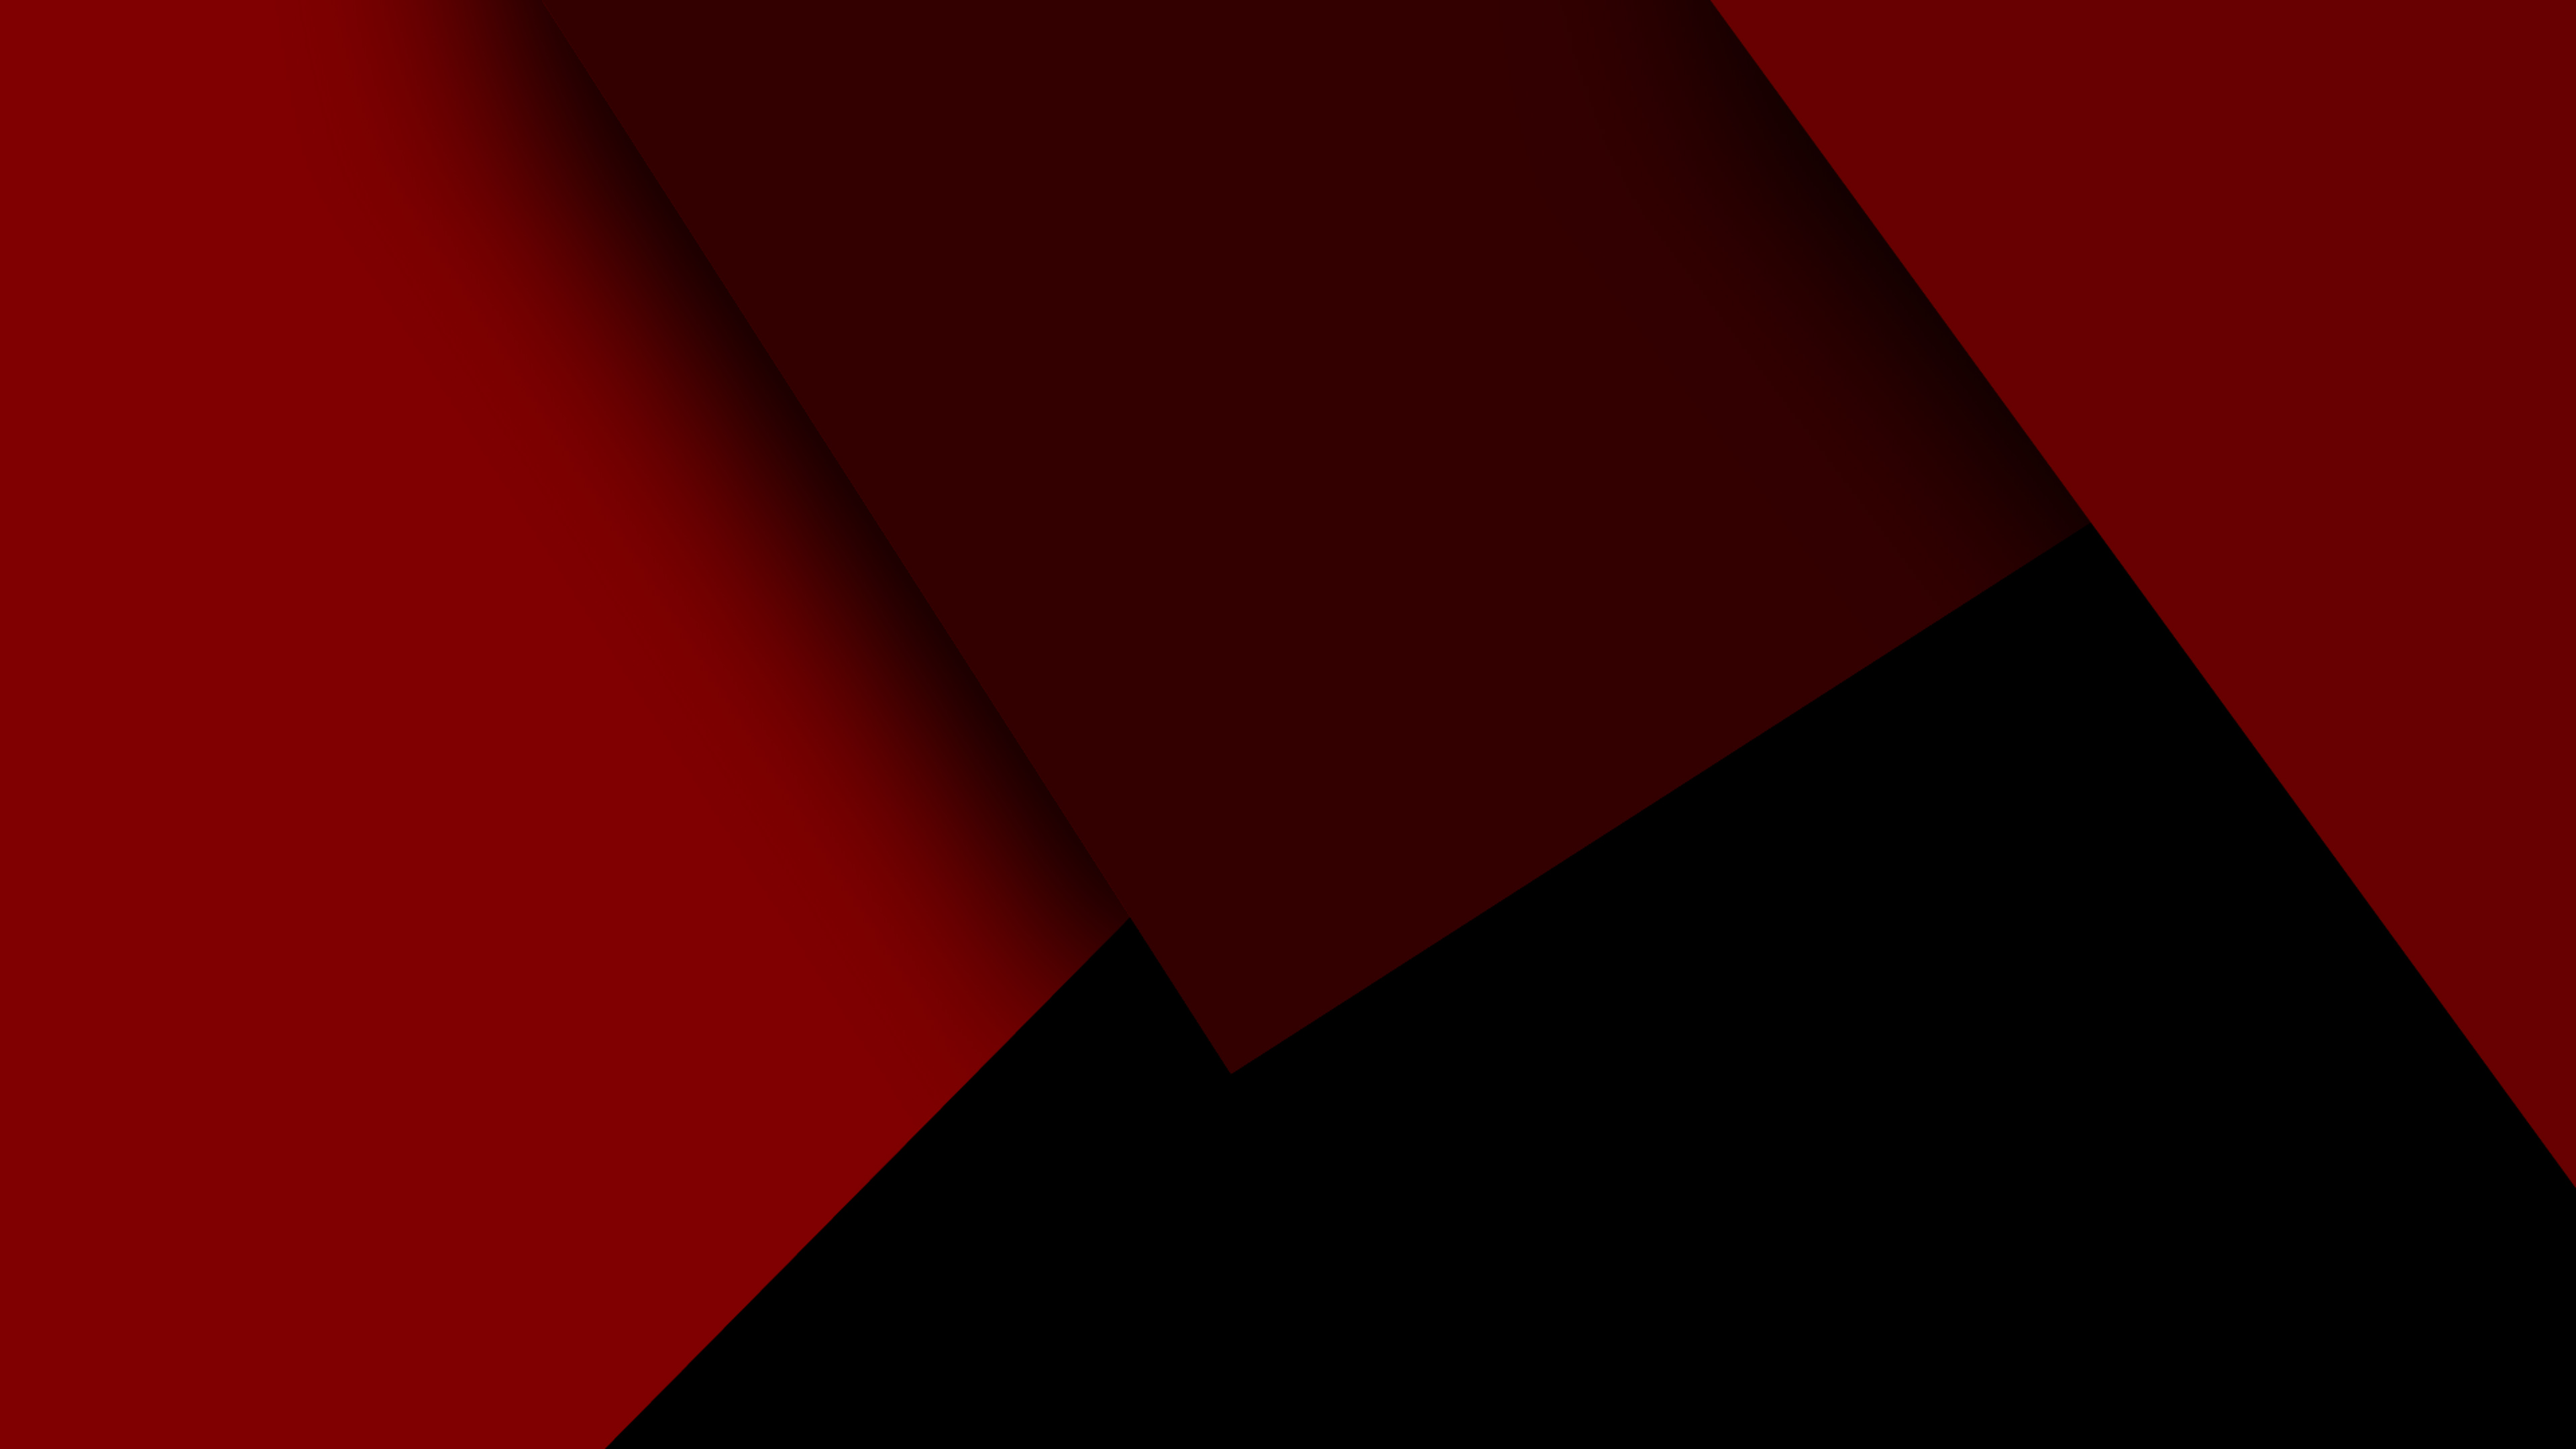 Dark Red Black Abstract 4k Hd Abstract 4k Wallpapers Images Backgrounds Photos And Pictures